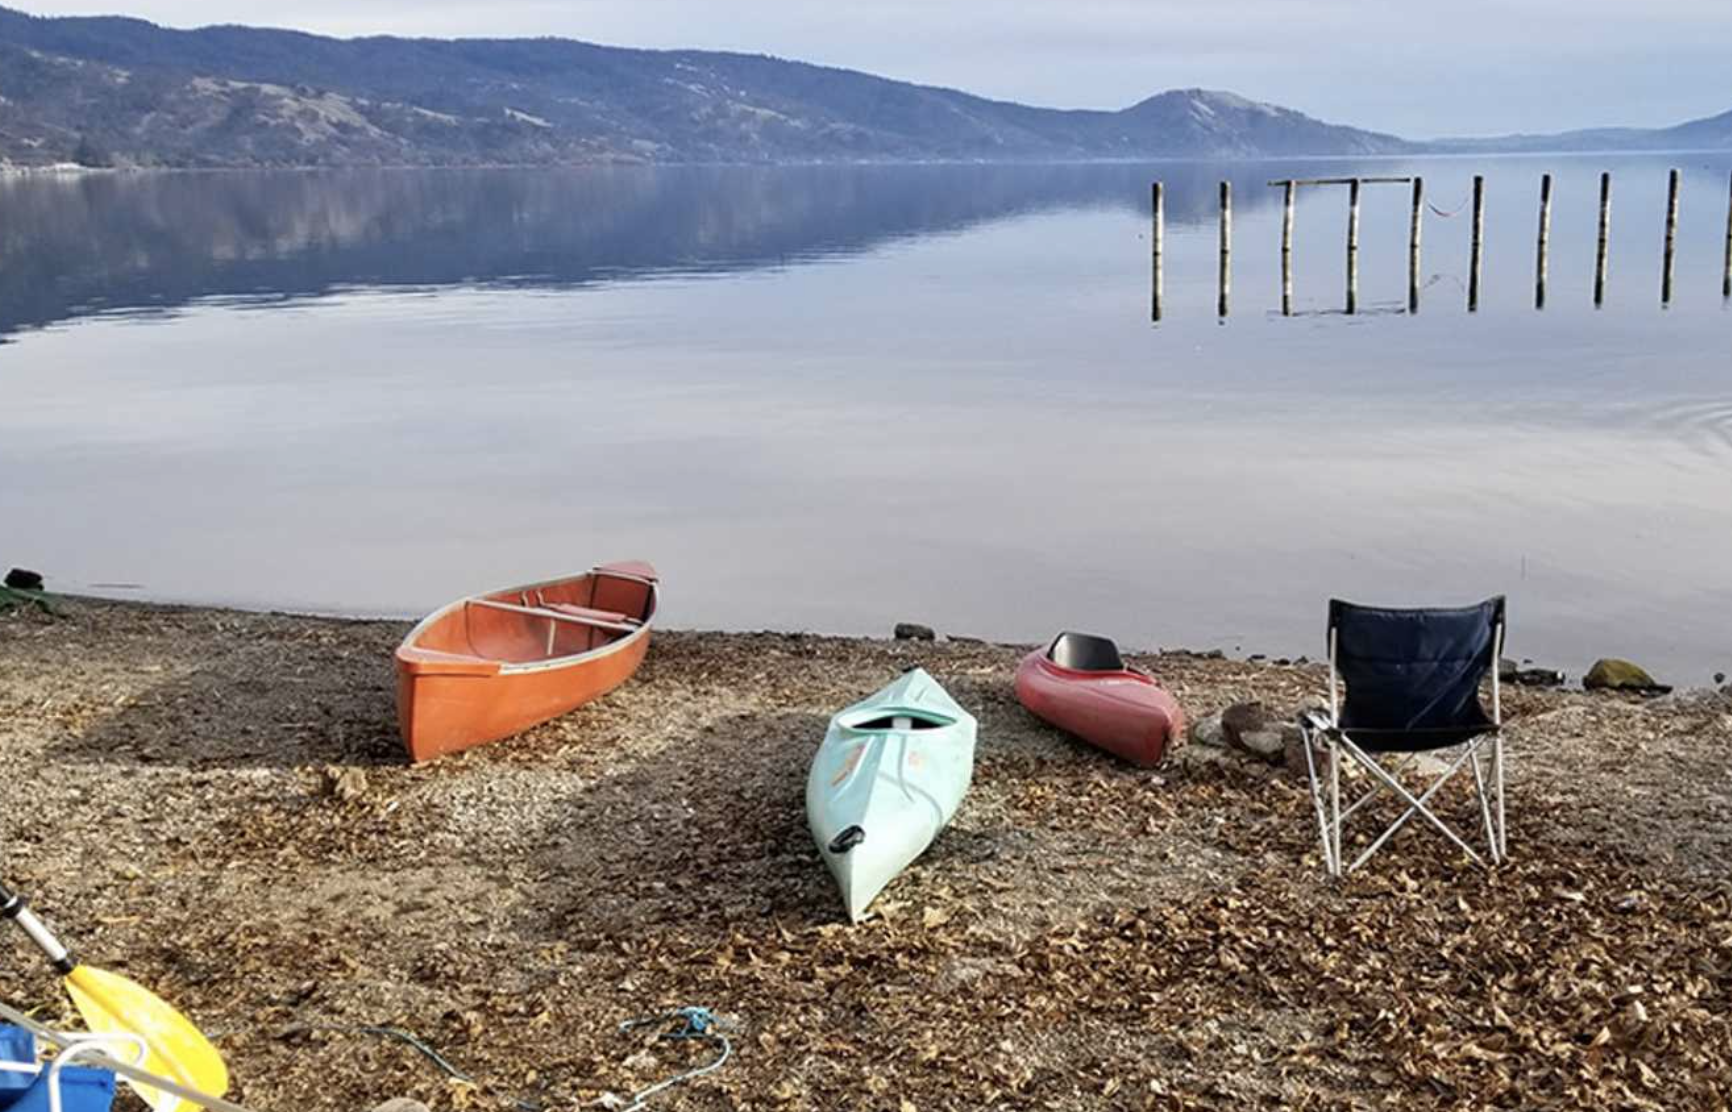 Kayaks and canoe next to water at The Aurora RV Park in California with mountain in the background